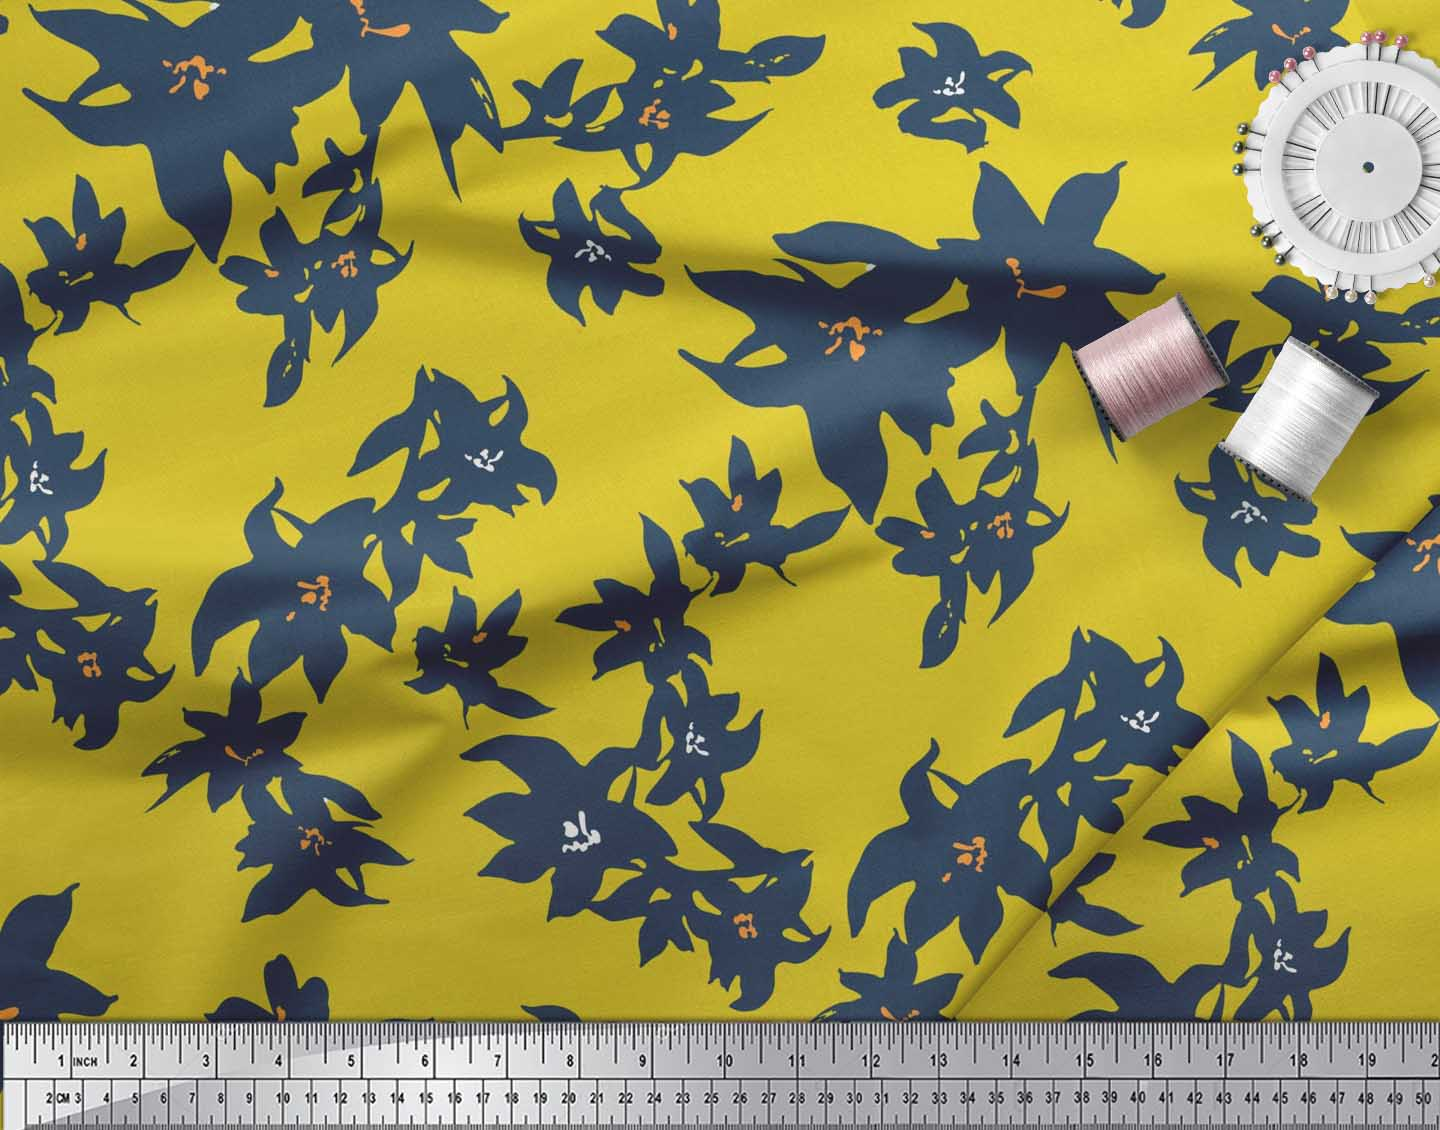 Soimoi-Cotton-Poplin-Fabric-Artistic-Floral-Printed-Craft-Fabric-15t thumbnail 3